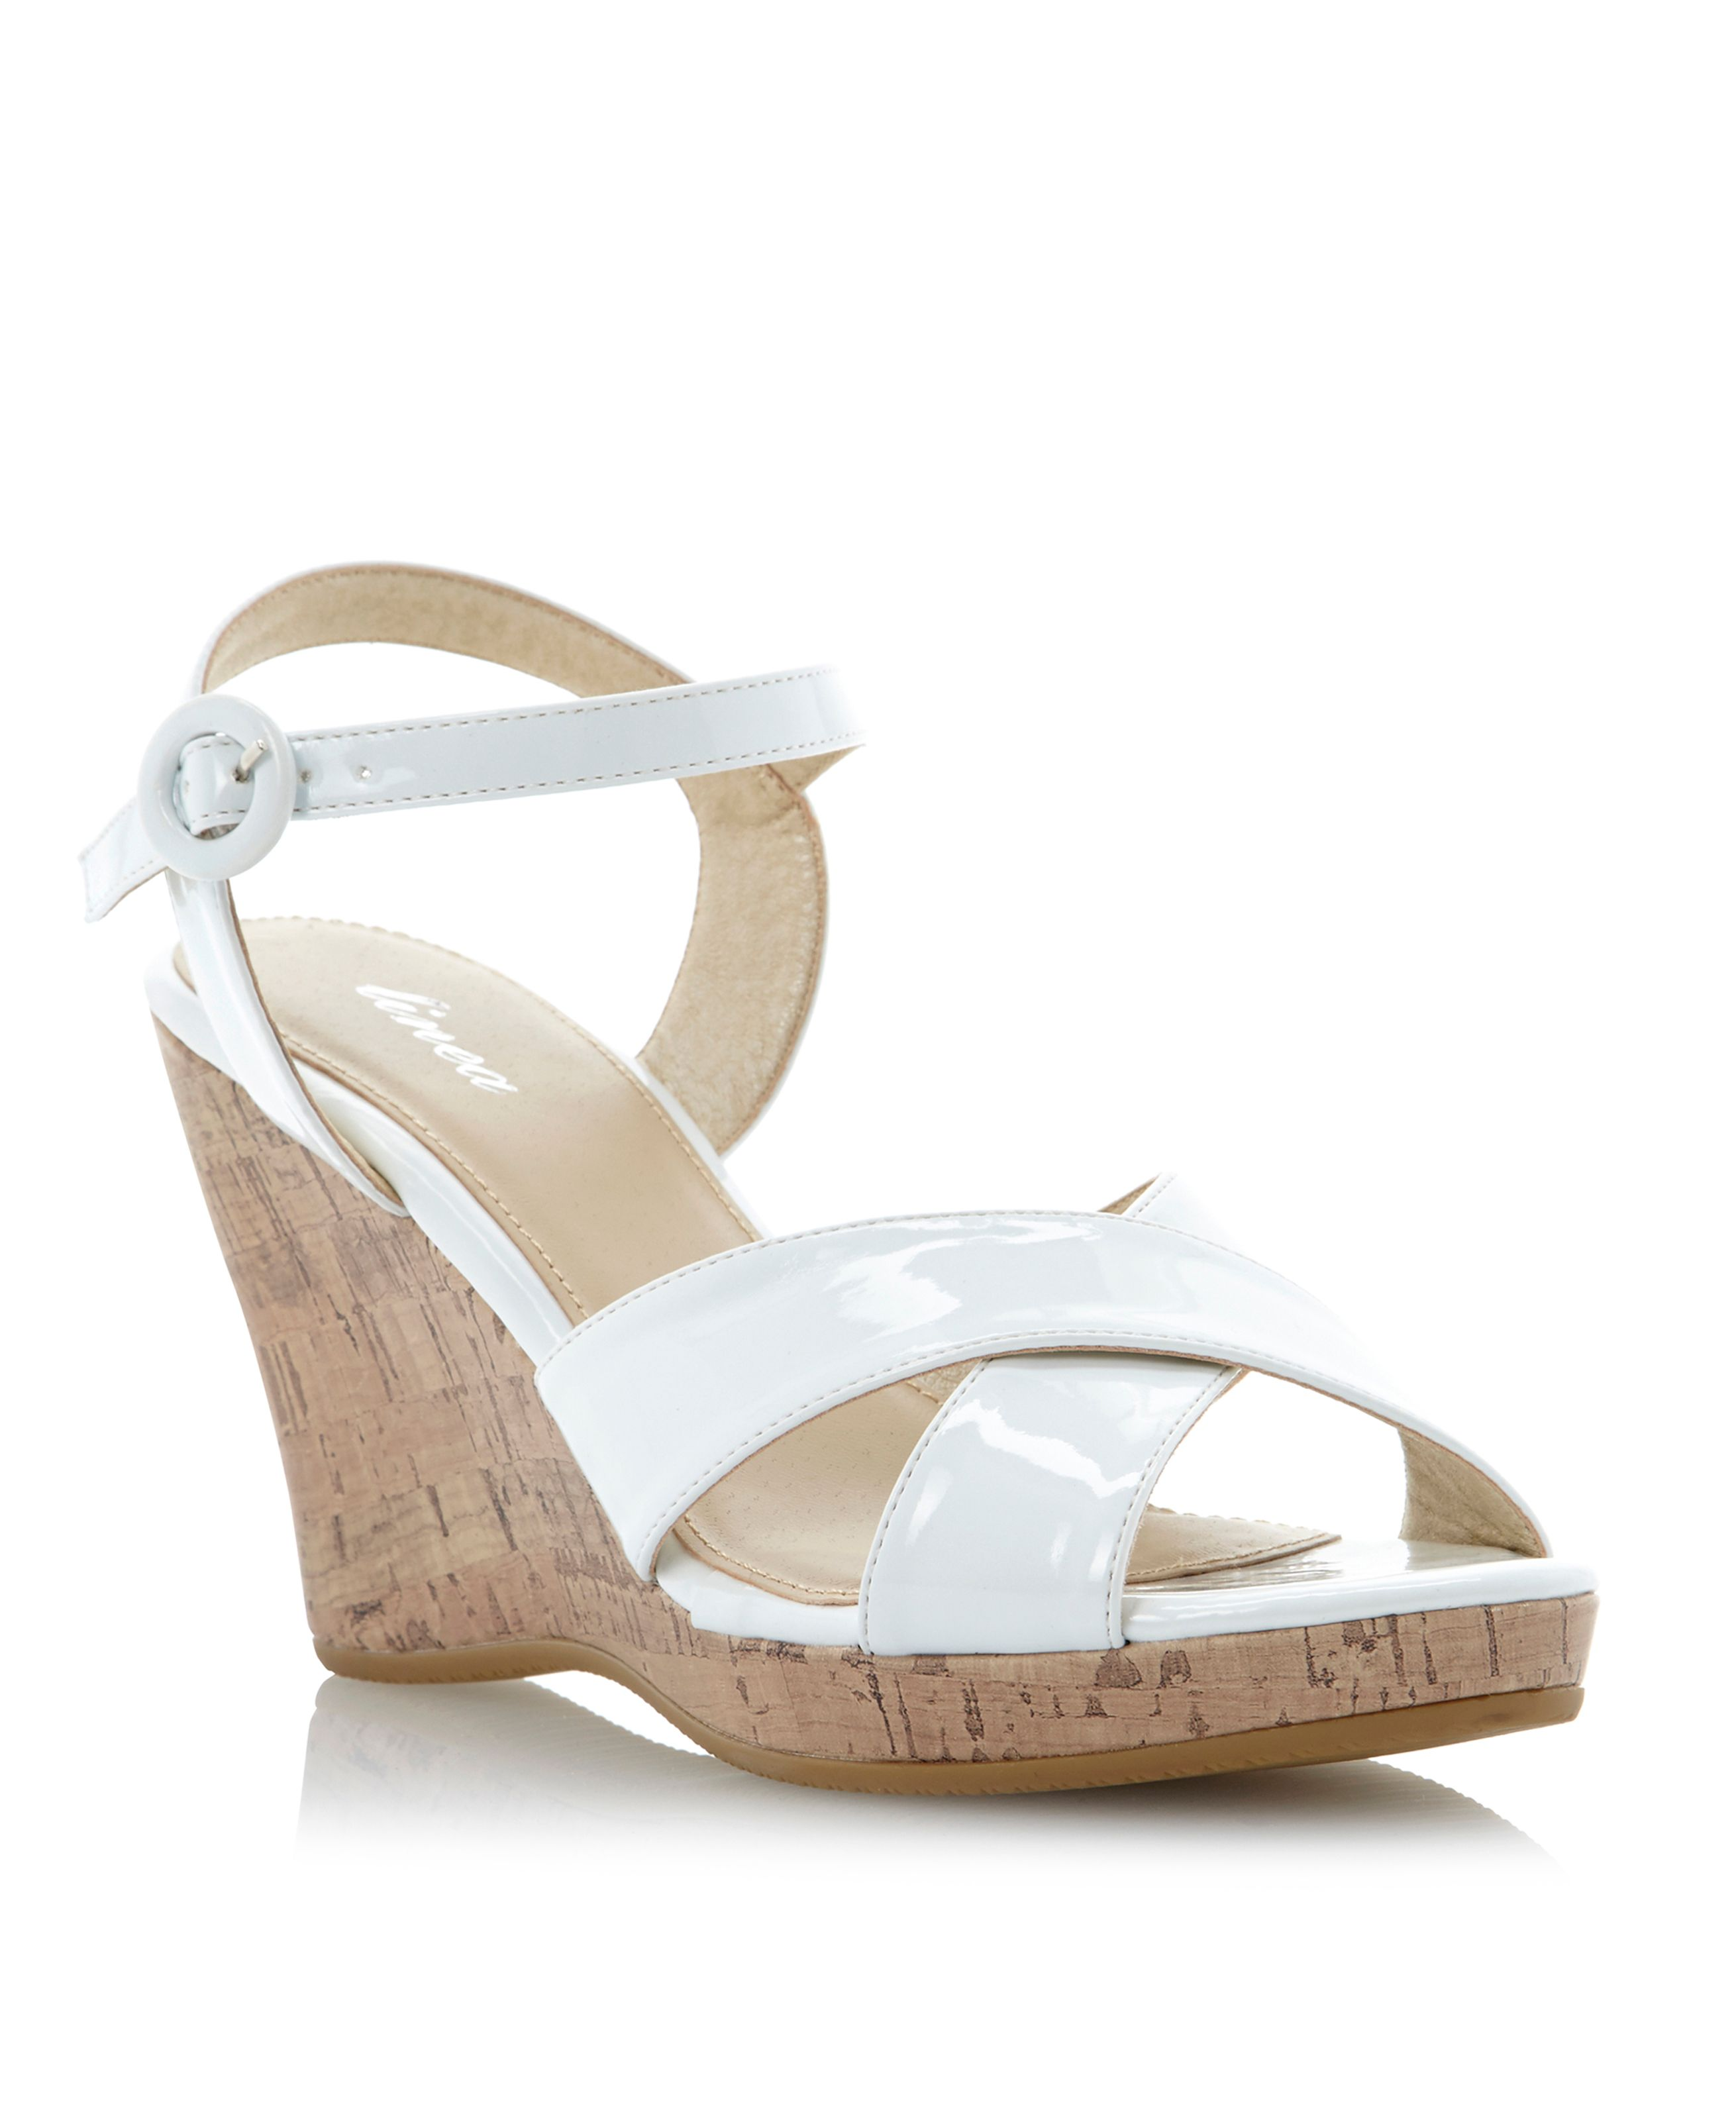 Gallows ankle strap high wedge sandals